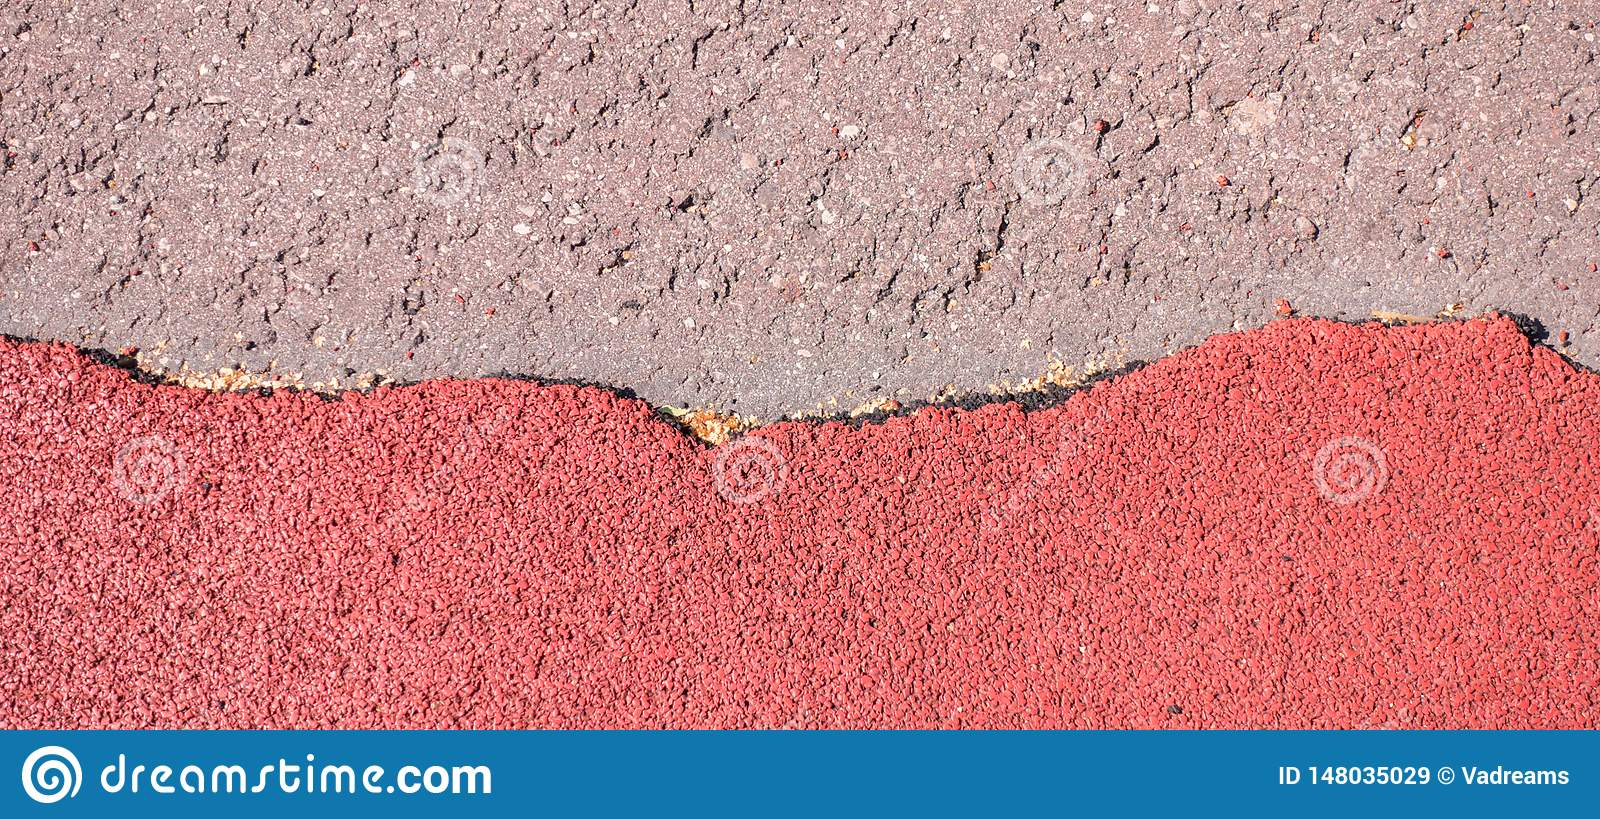 Old torn red rubber crumb cover, treadmill or running track surface outdoor playground stadium texture background.